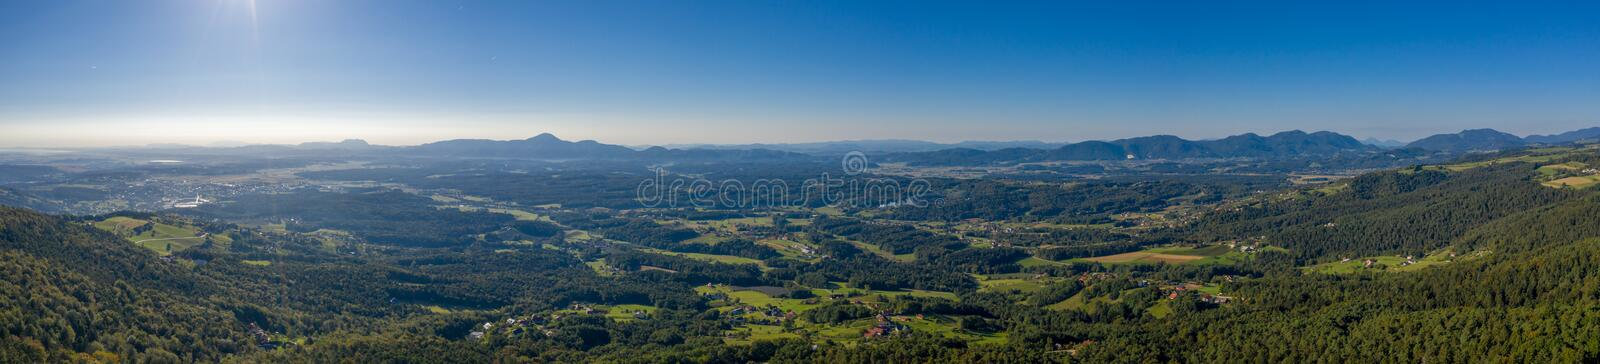 Aerial view from Pohorje on Soouth East Slovenia, Styria region. Towns of Slovenska Bistrica, Oplotnica and Slovenske Konjice, Haloze and Boc in background stock photo